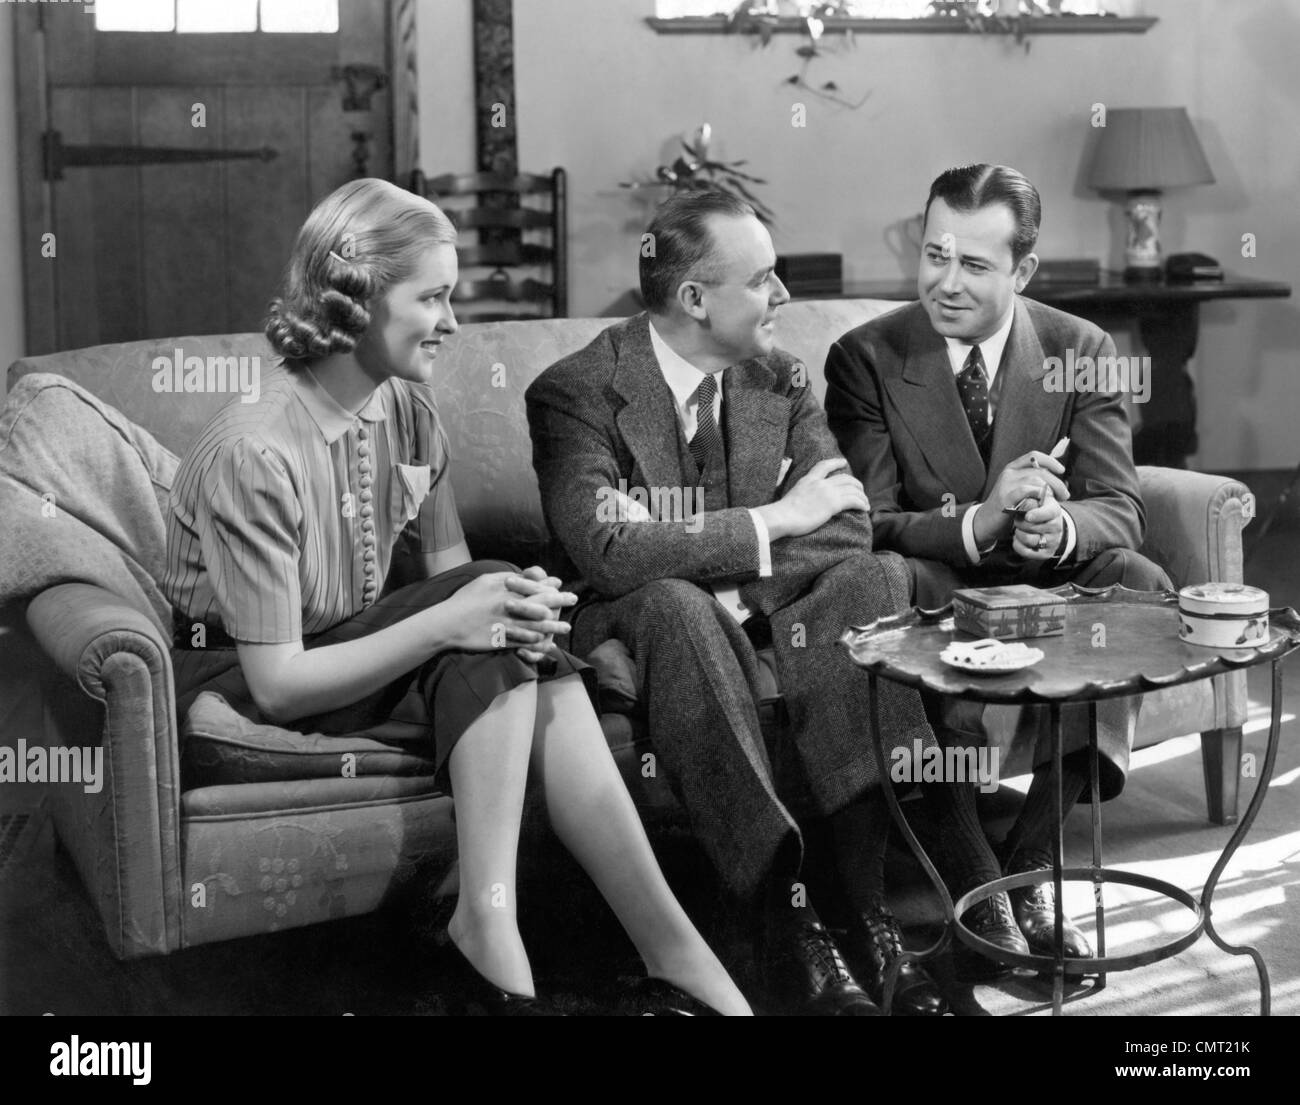 Wondrous 1930S 1940S Two Men And Woman Social Group Sitting On Couch Gmtry Best Dining Table And Chair Ideas Images Gmtryco